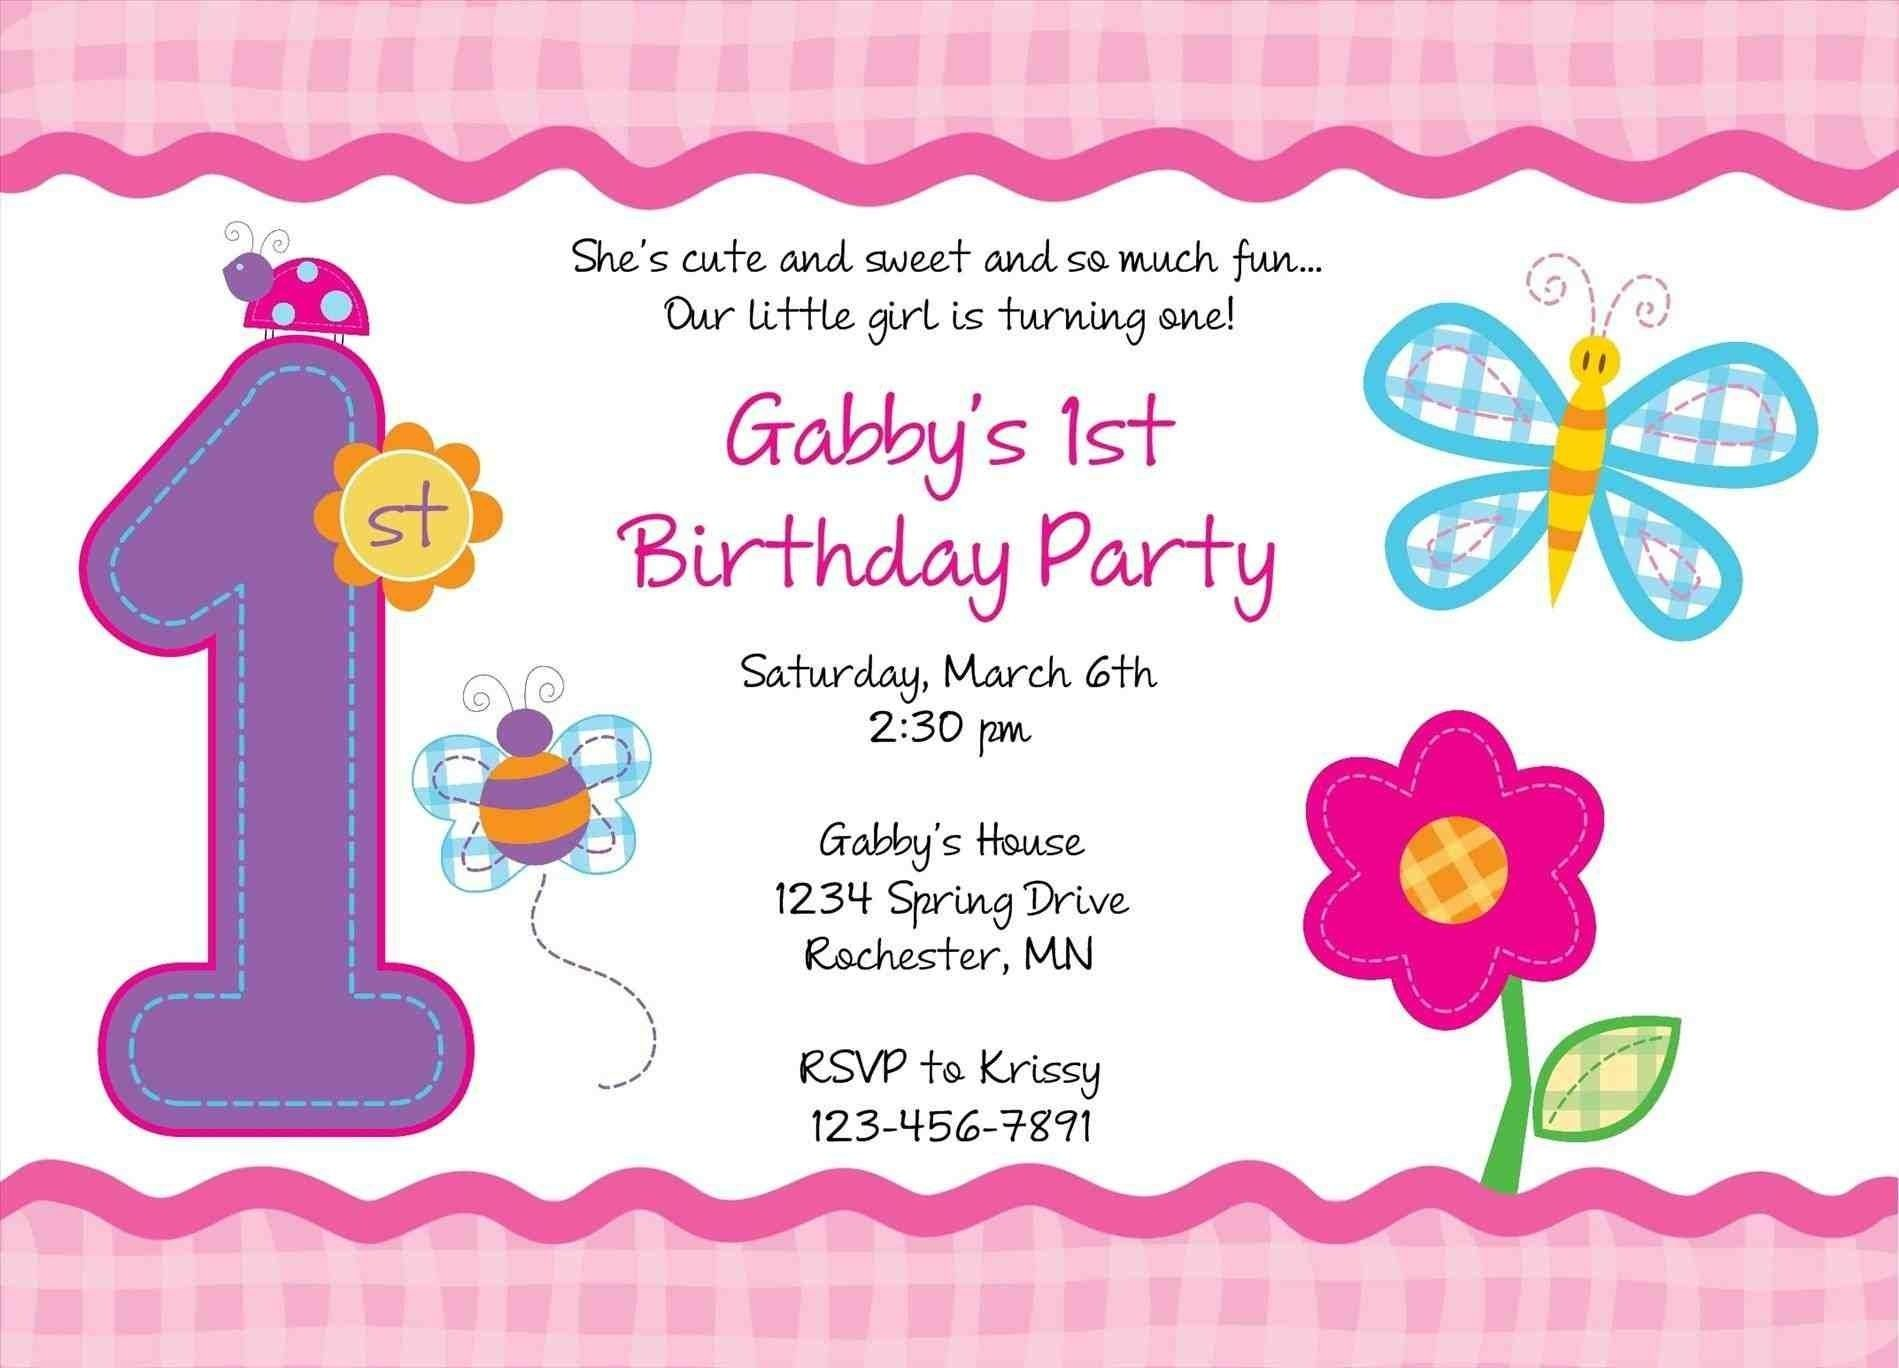 Pink And Black Birthday Invitation Templates Free Download Free Within Gi Create Birthday Invitations First Birthday Invitation Cards Free Birthday Invitations